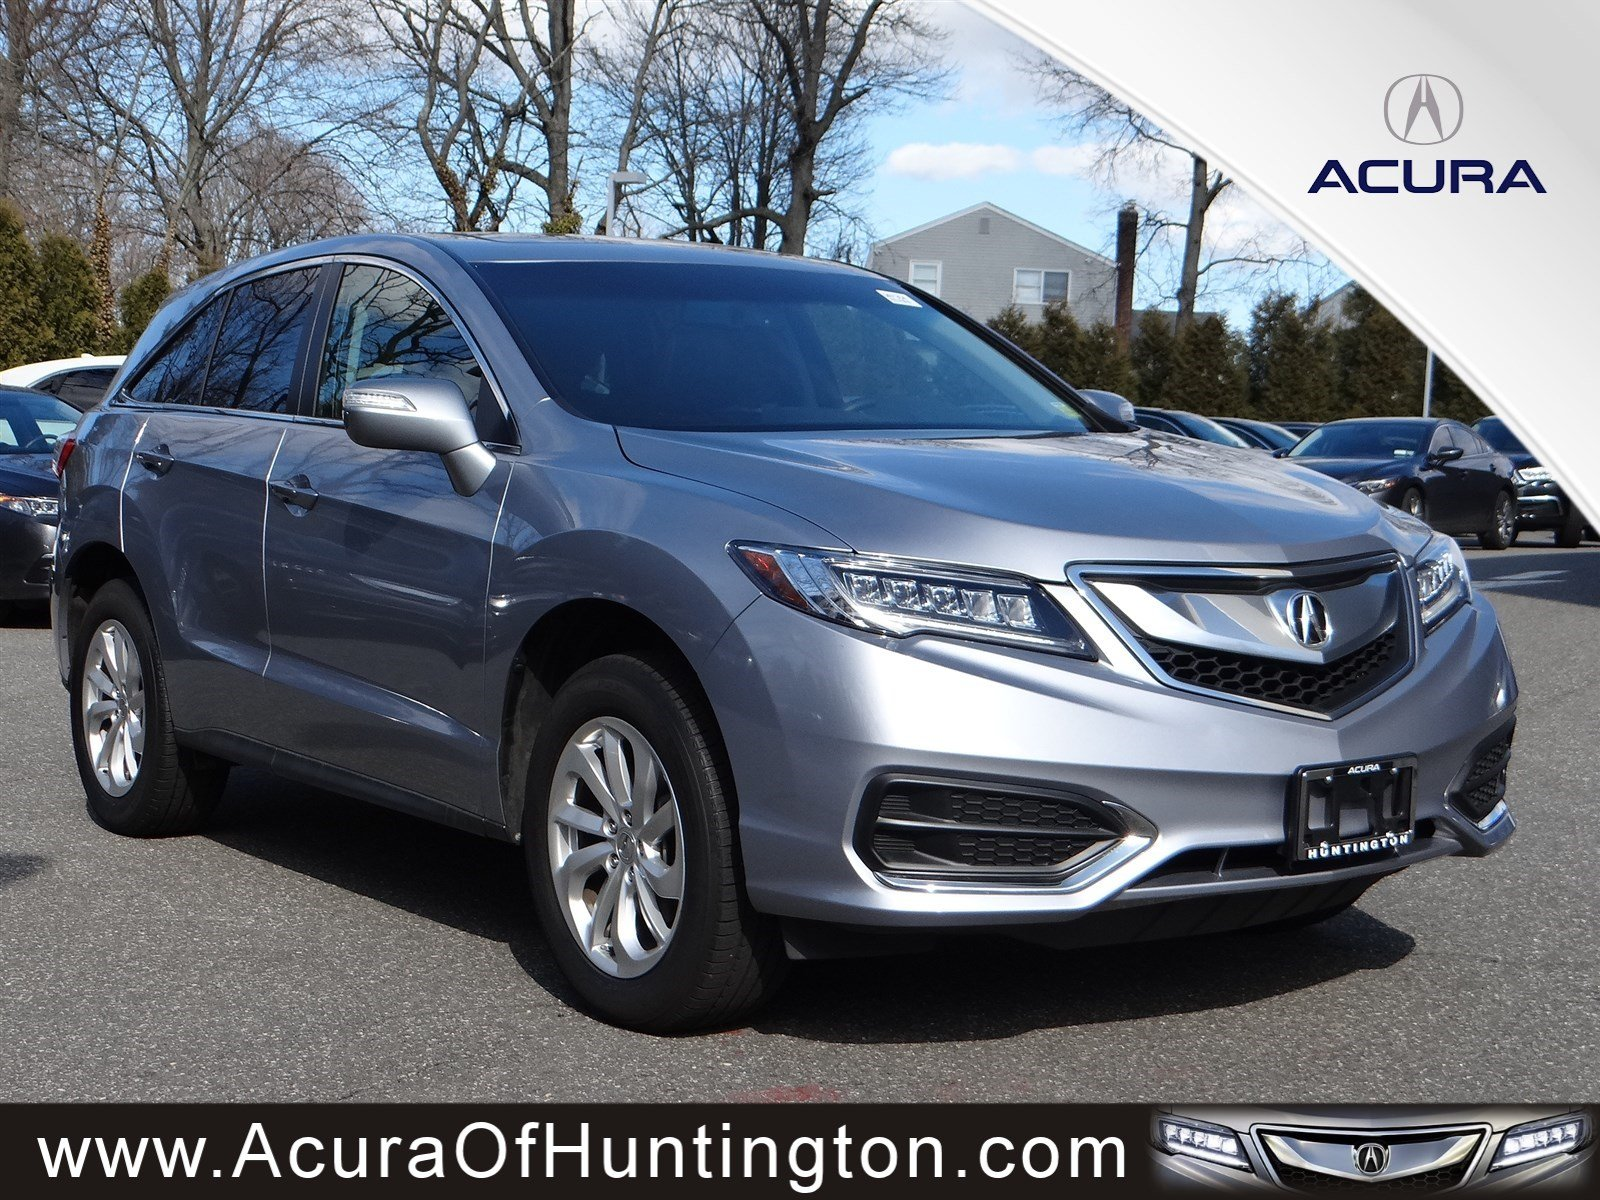 news production suv ohio roadshow starts rdx in acura